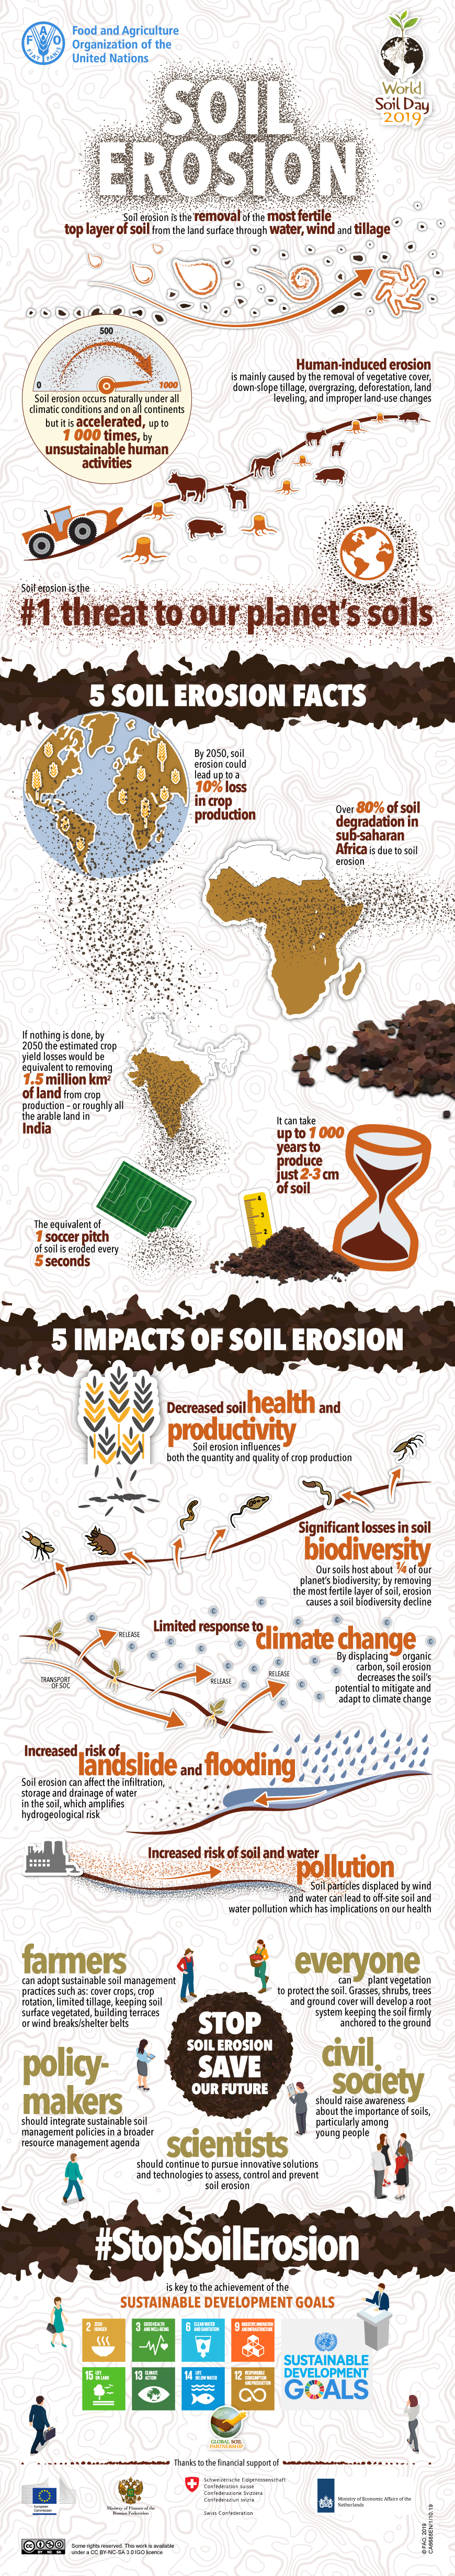 #WorldSoilDay graphic